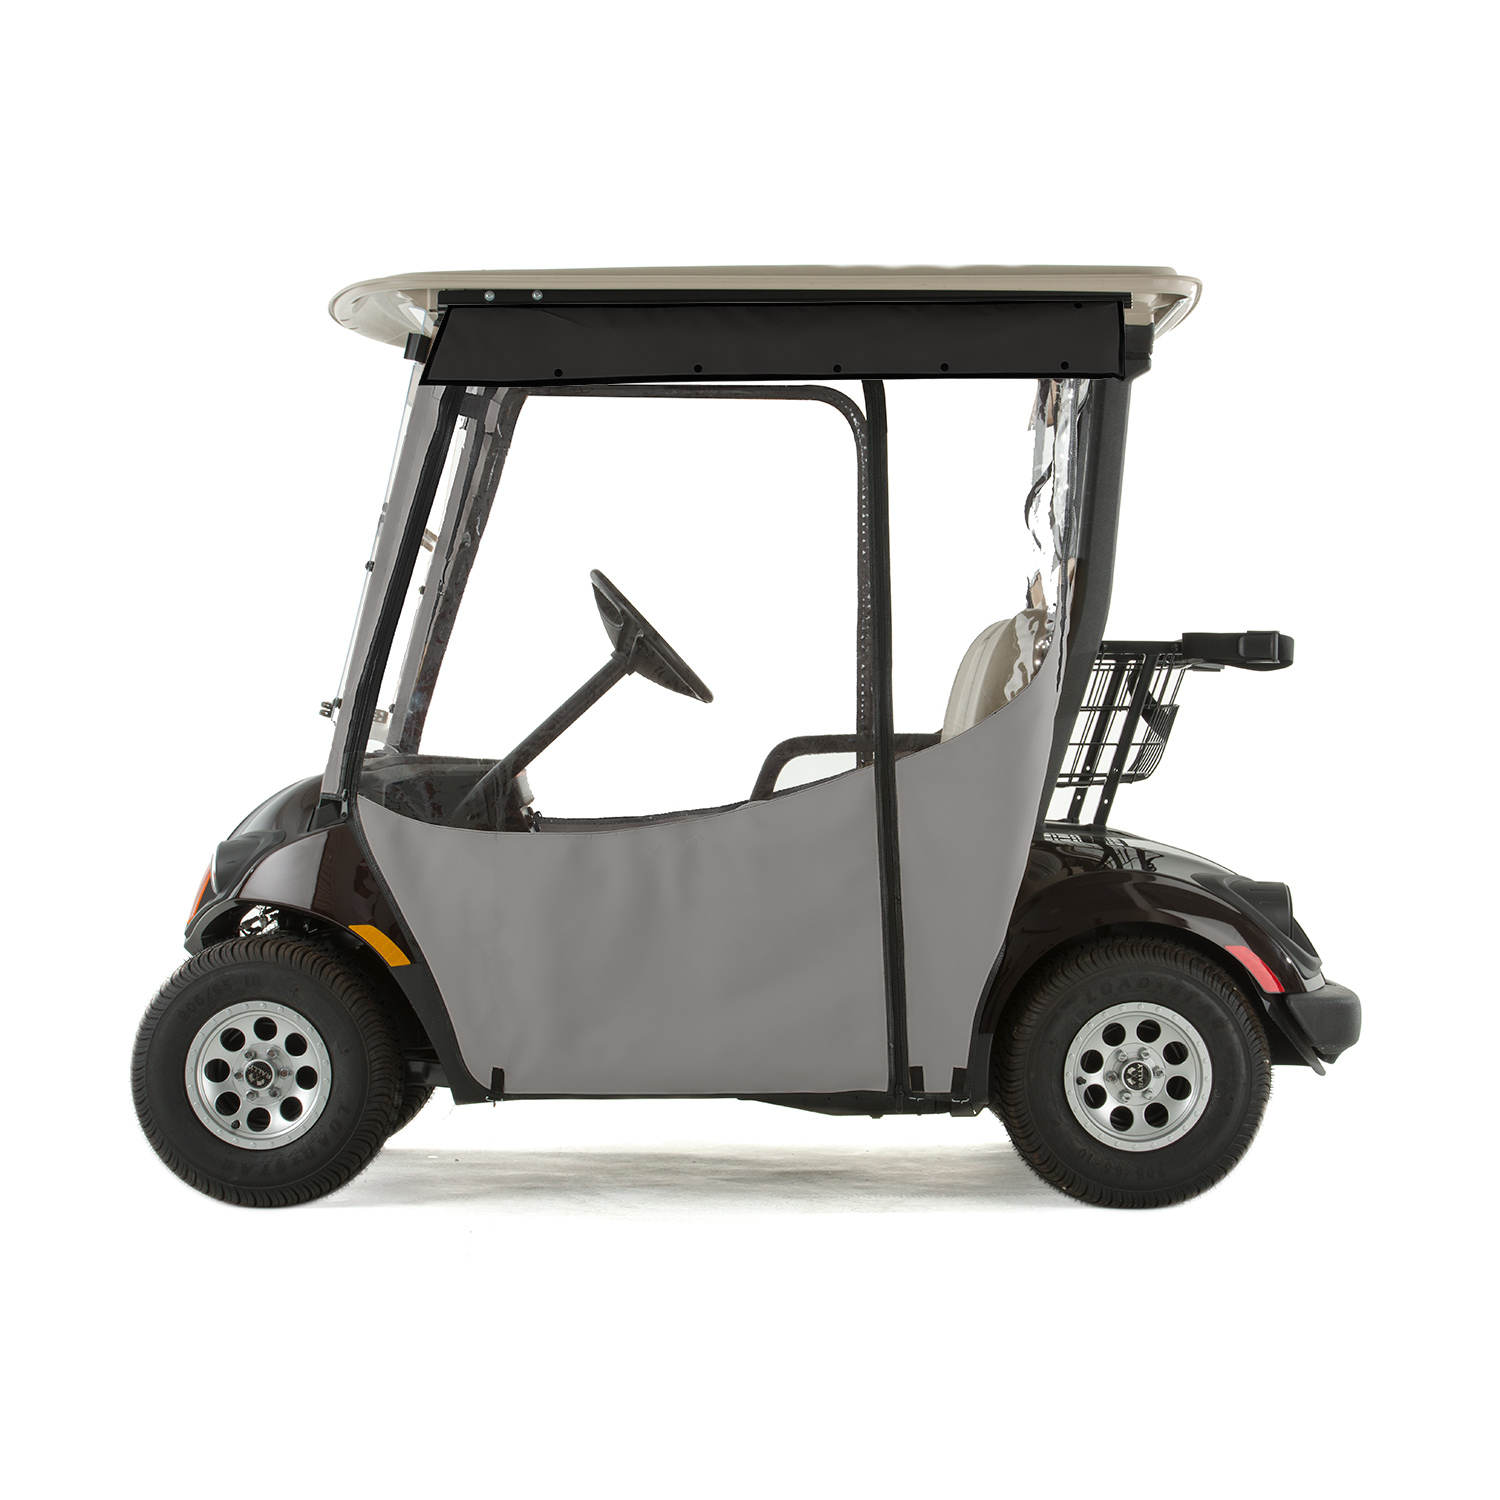 Yamaha Drive 2 Golf Cart Pro-touring Sunbrella Track Enclosure ... on clear plastic golf cart covers, club car golf cart rain covers, rail golf cart covers, eevelle golf cart covers, vinyl golf cart covers, door works golf cart covers, star golf cart covers, portable golf cart covers, national golf cart covers, buggies unlimited golf cart covers, sam's club golf cart covers, harley golf cart seat covers, yamaha golf cart covers, canvas golf cart covers, classic golf cart covers, discount golf cart covers, custom golf cart covers, golf cart cloth seat covers, golf cart canopy covers, 3 sided golf cart covers,